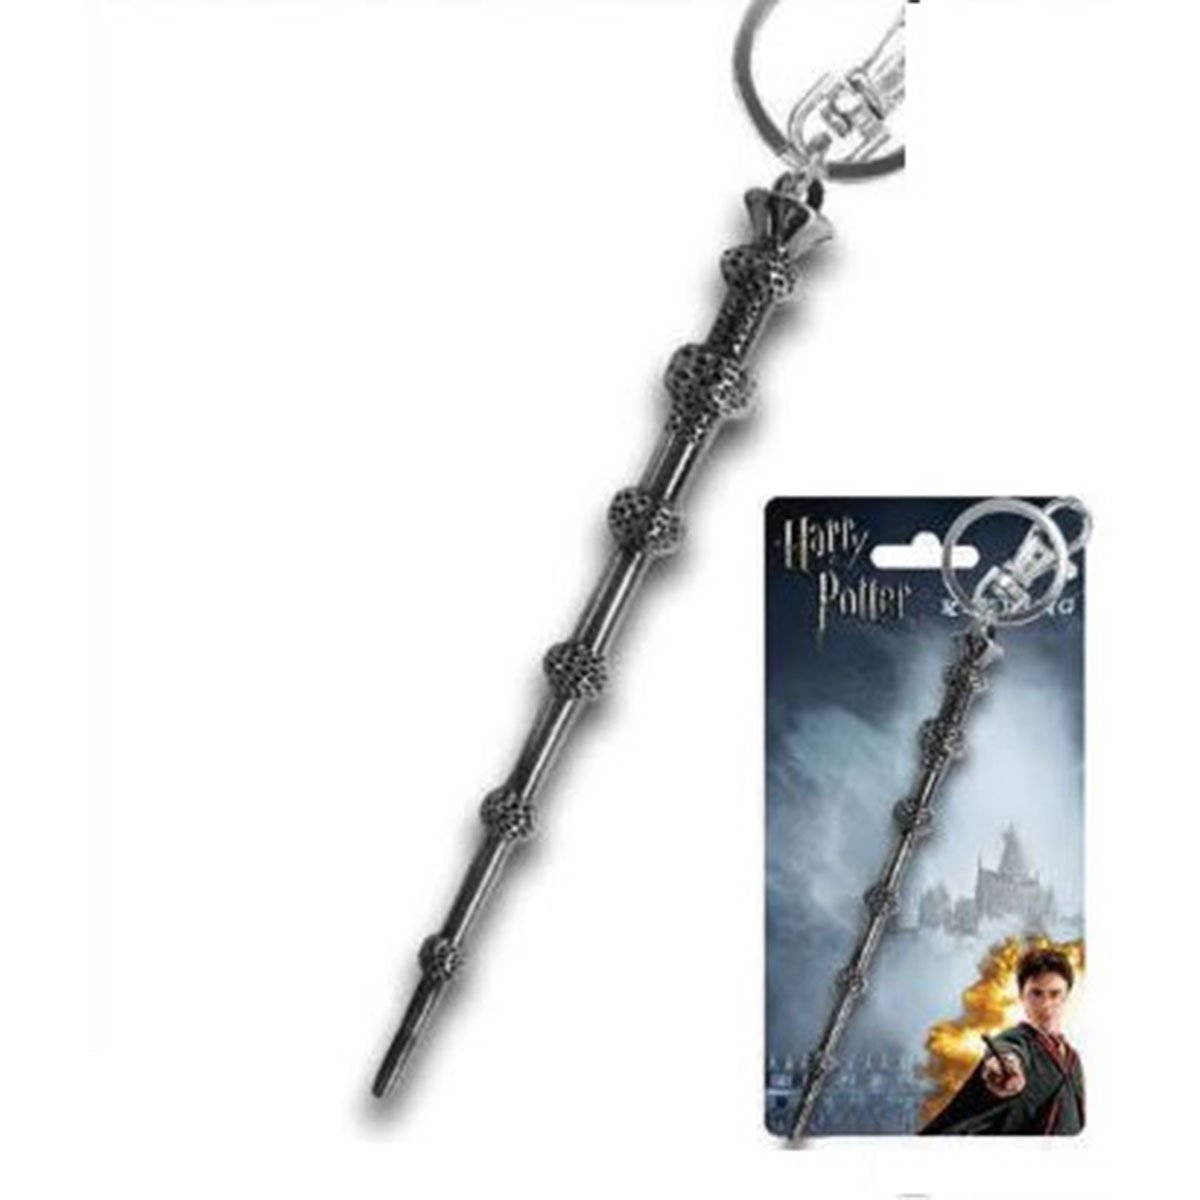 Harry Potter Pewter Key Ring: Dumbledore's Wand